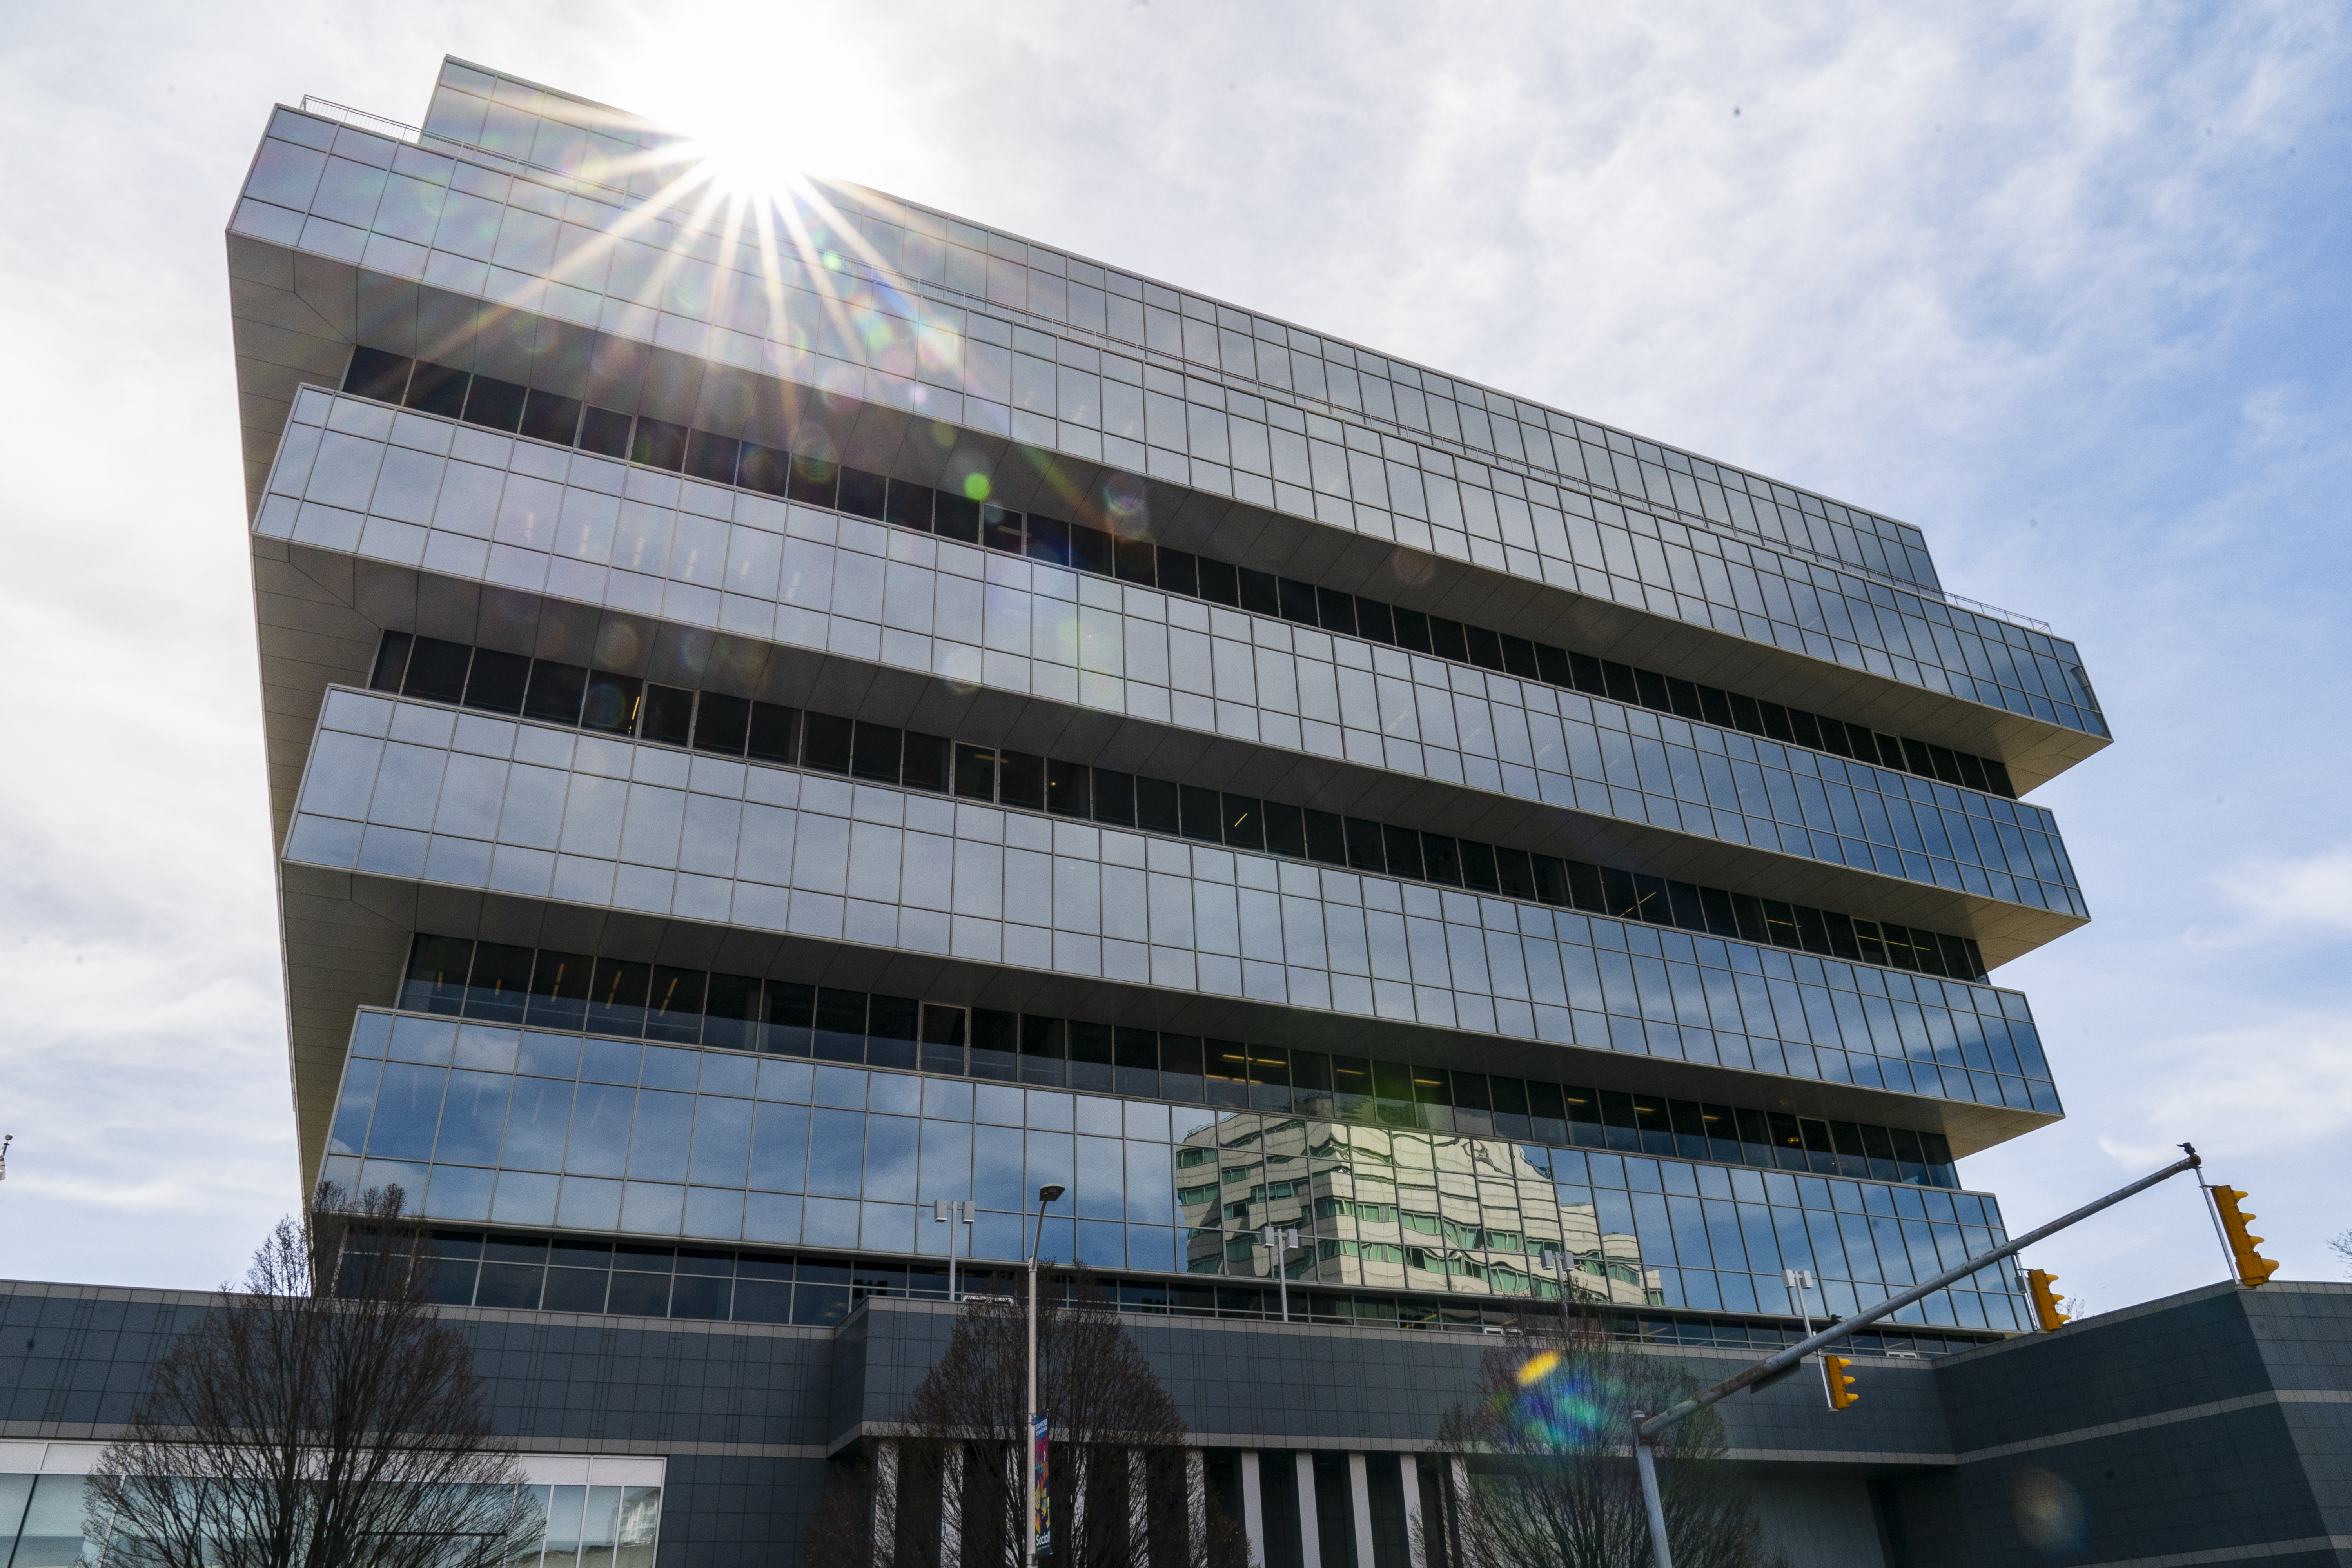 Purdue Pharma headquarters stands in downtown Stamford, April 2, 2019 in Stamford, Connecticut. (Drew Angerer/Getty Images)